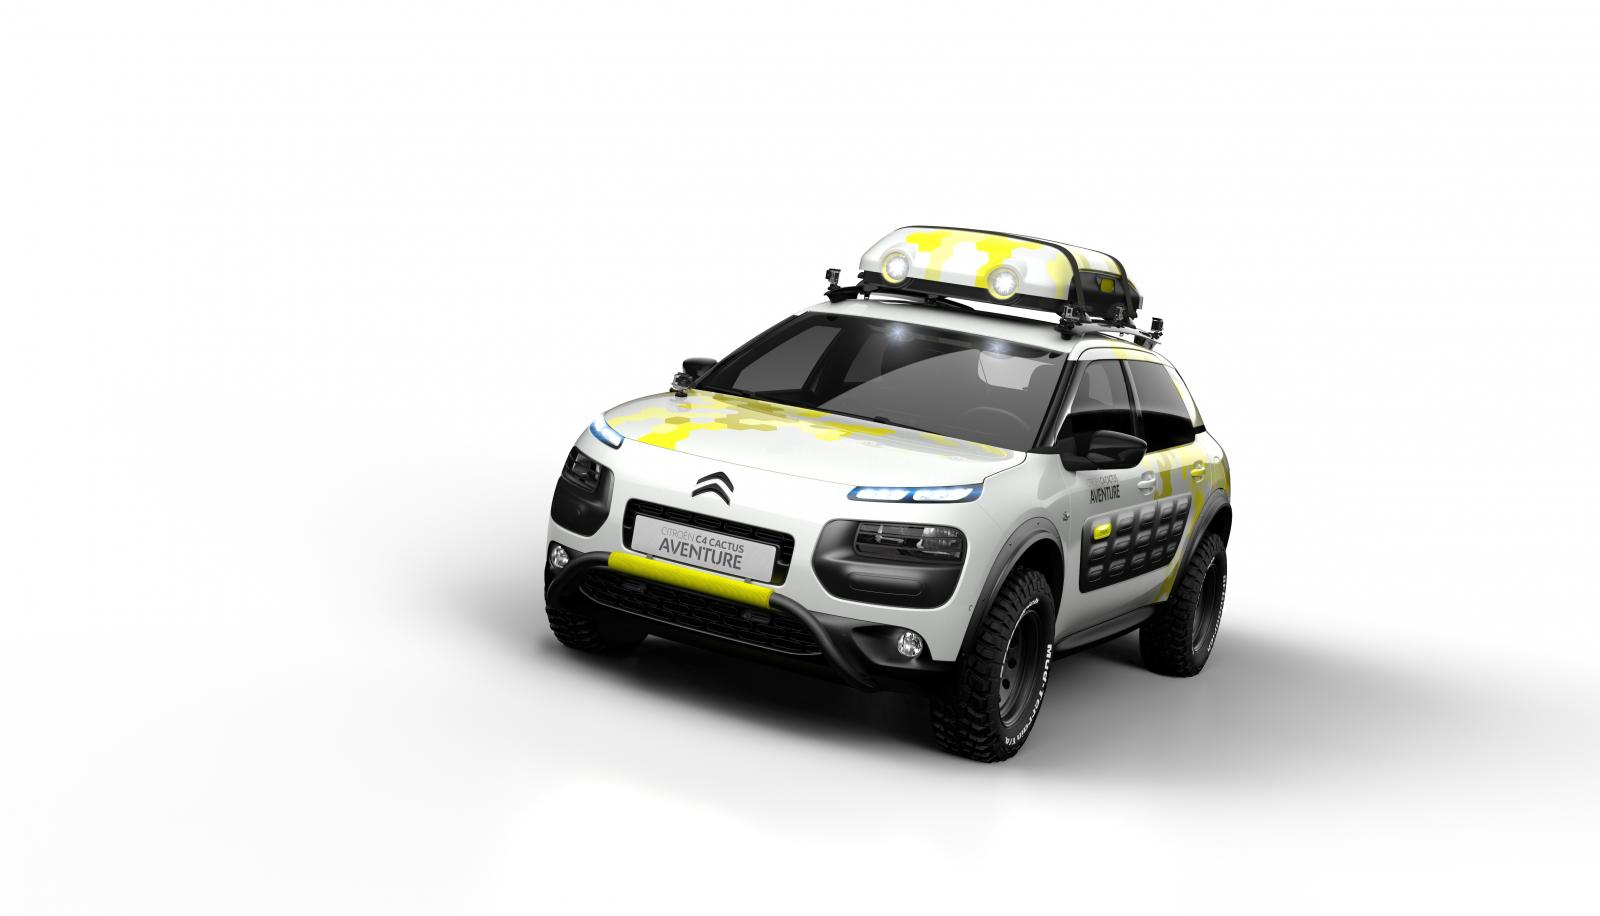 Concept-car C4 Cactus Adventure 2014 3/4 front